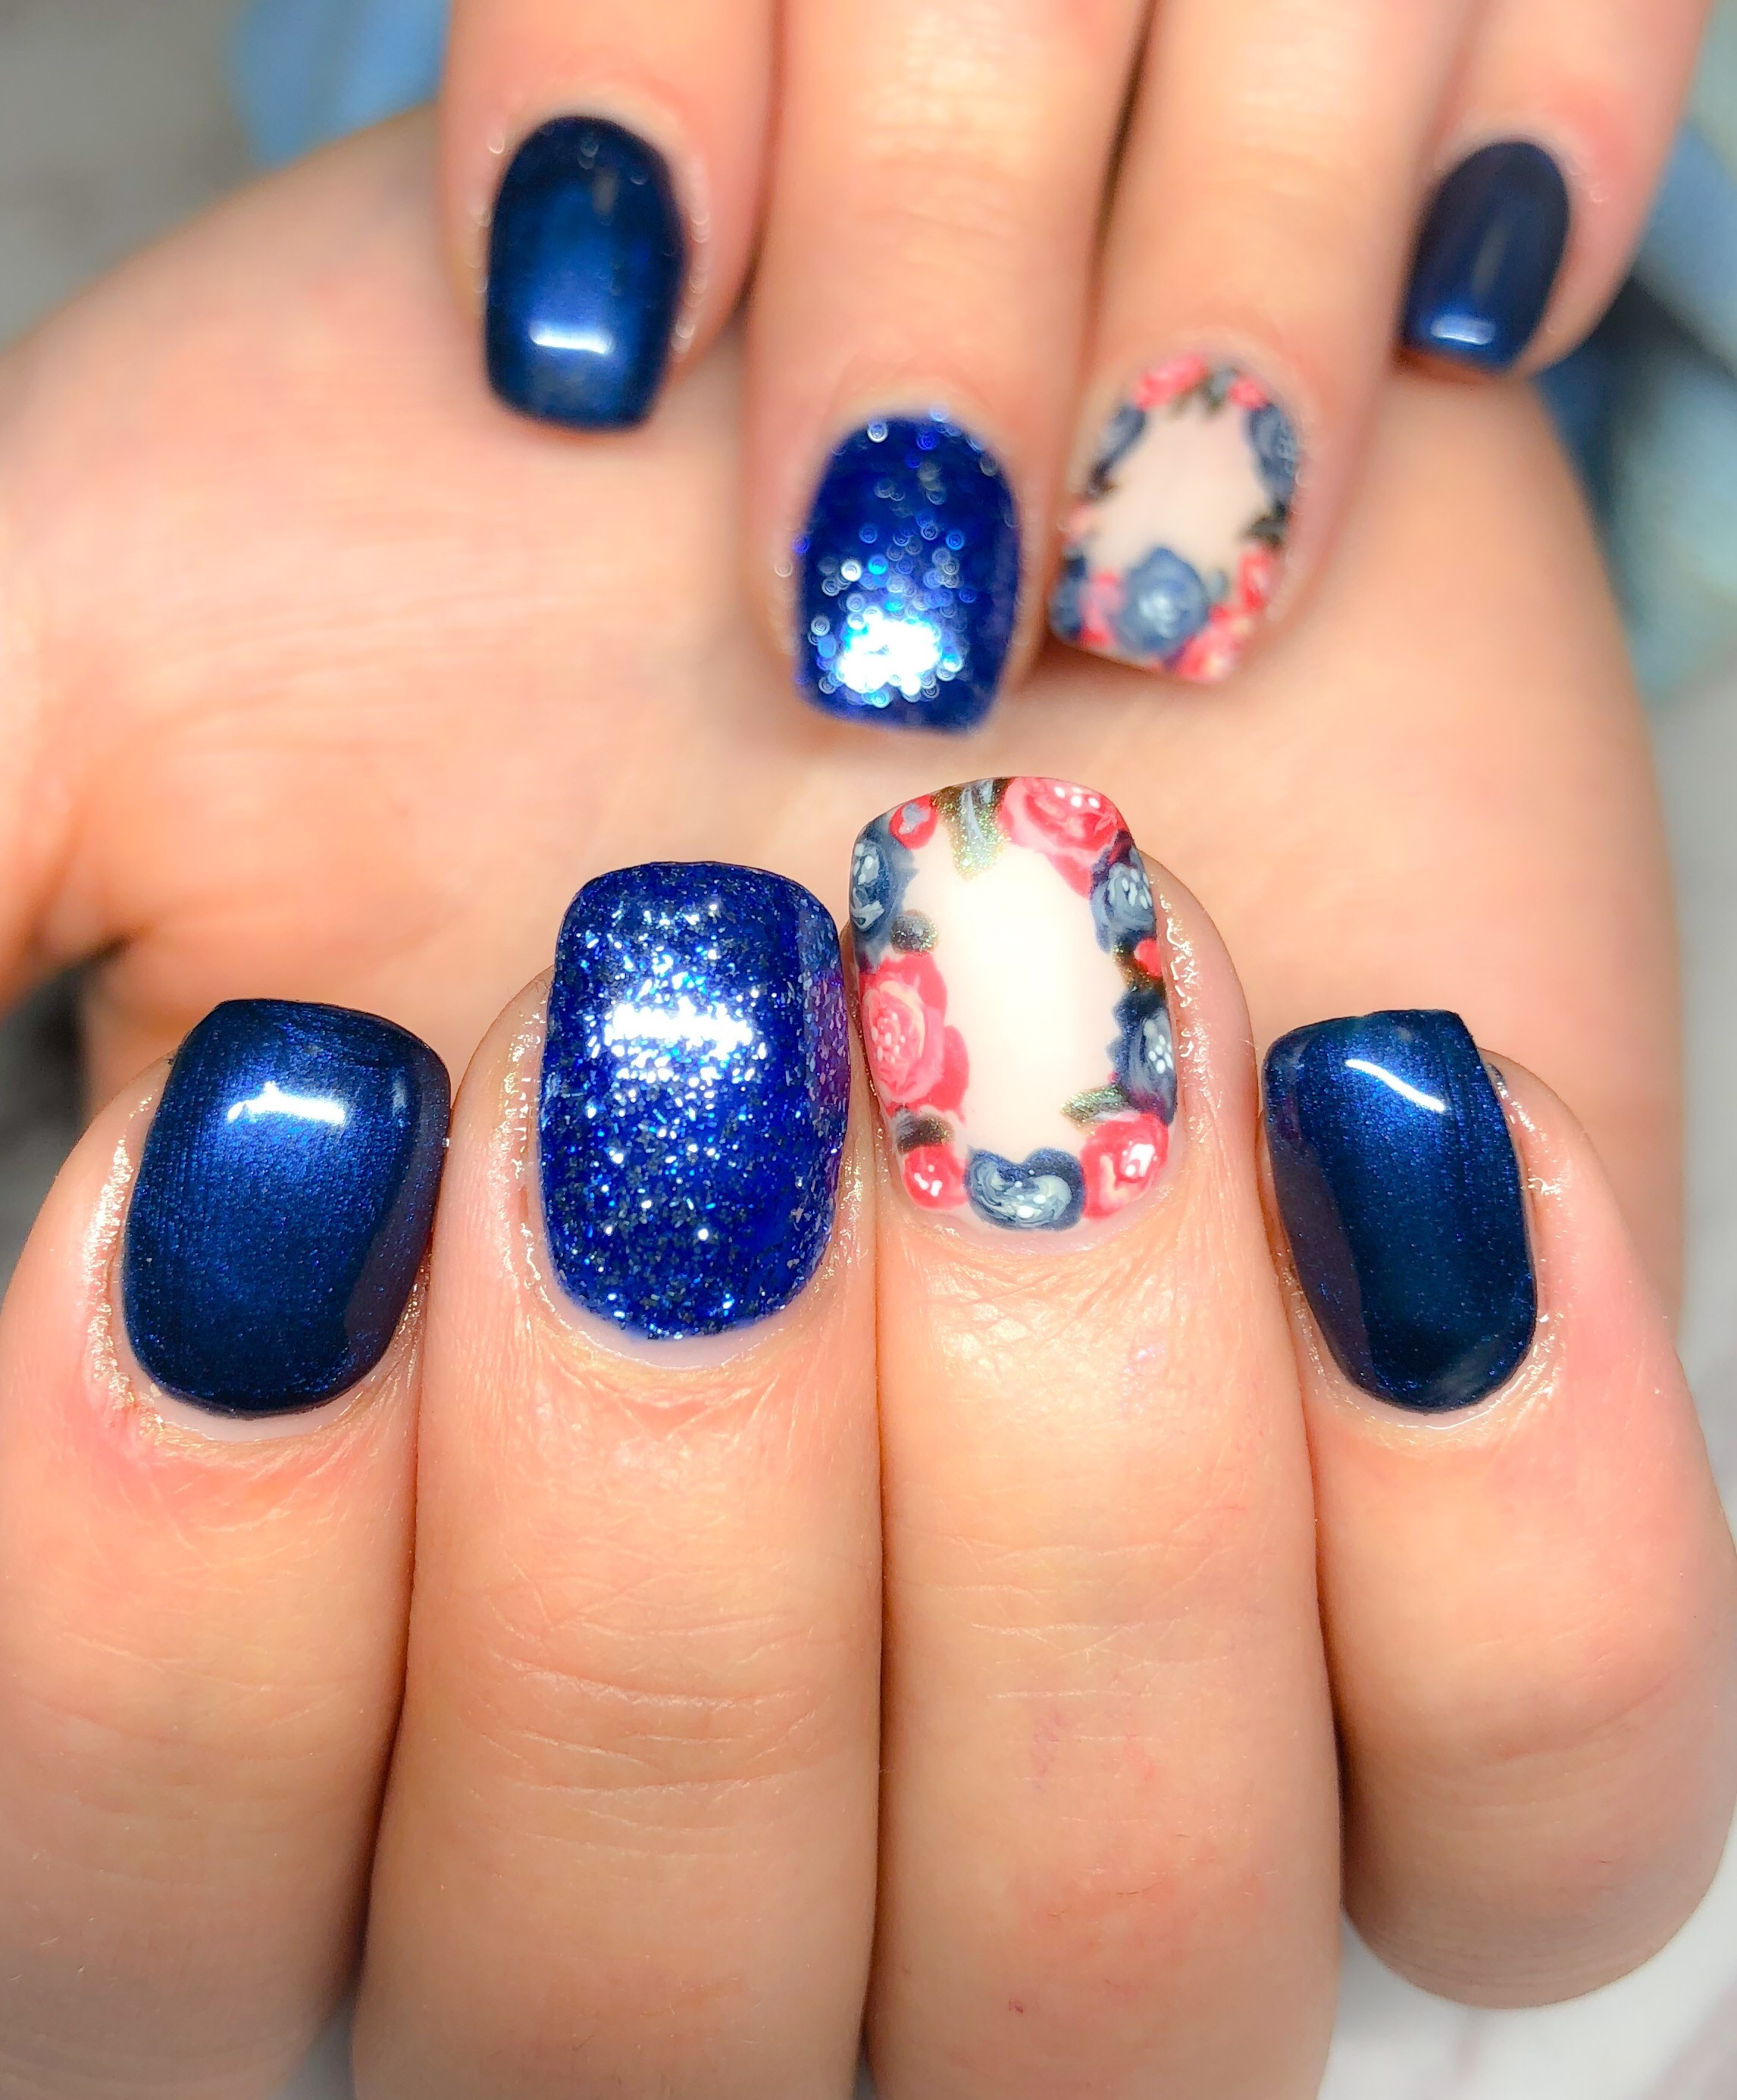 Day 197: Floral Accents Nail Art